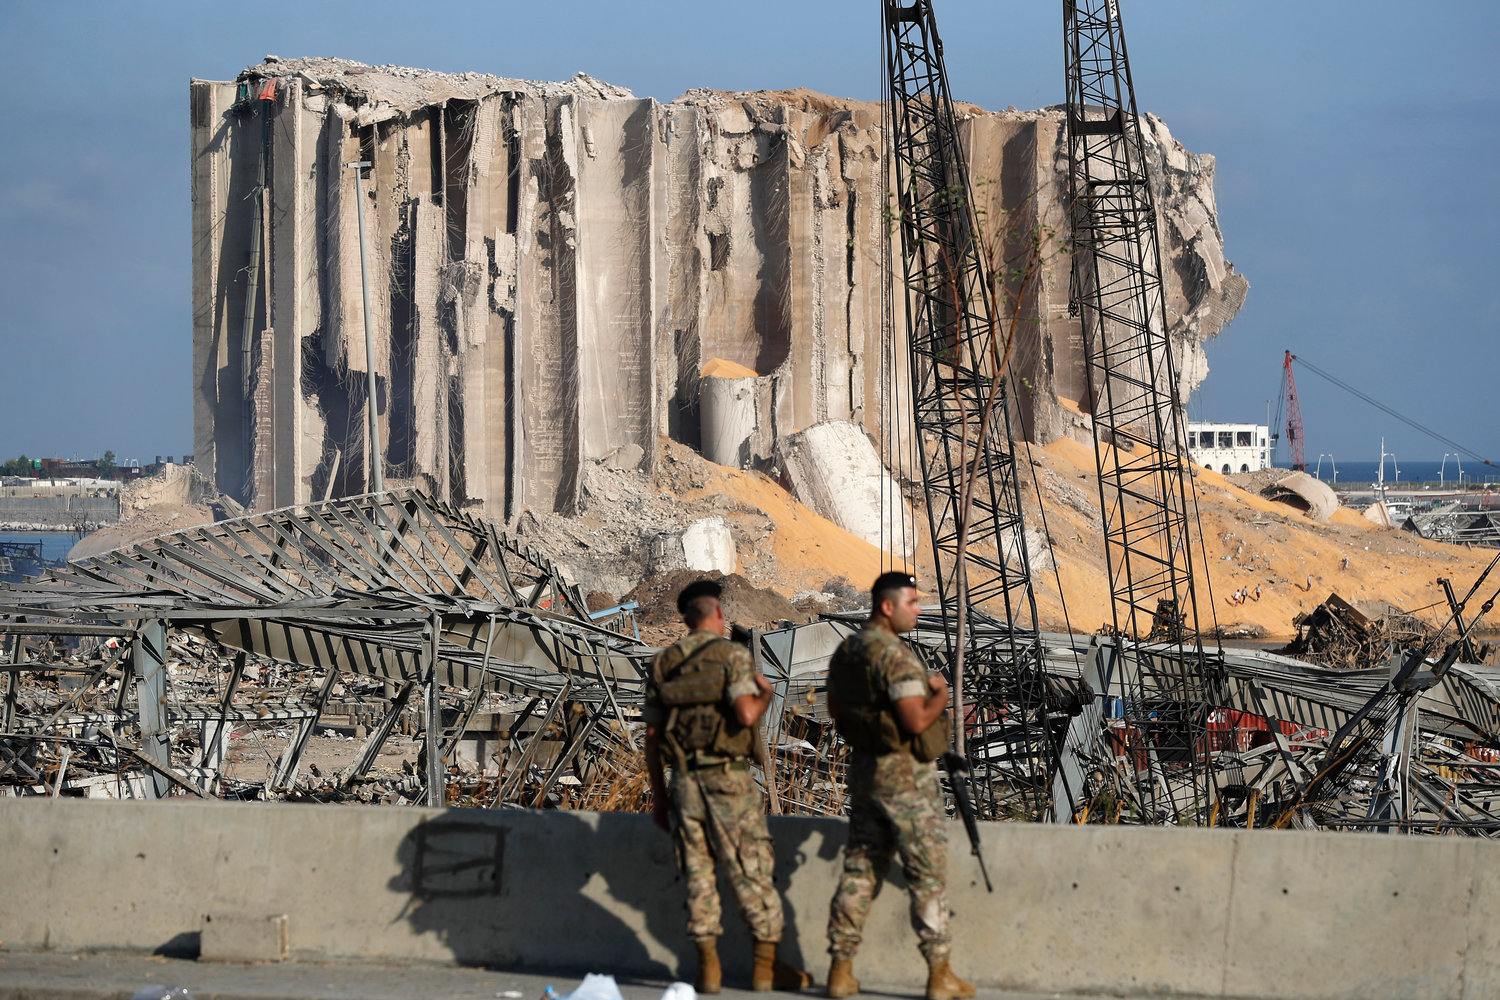 Lebanese army soldiers stand guard at the scene where an explosion hit on Tuesday the seaport of Beirut, Lebanon, Thursday, Aug. 6, 2020. (AP Photo/Hussein Malla)..